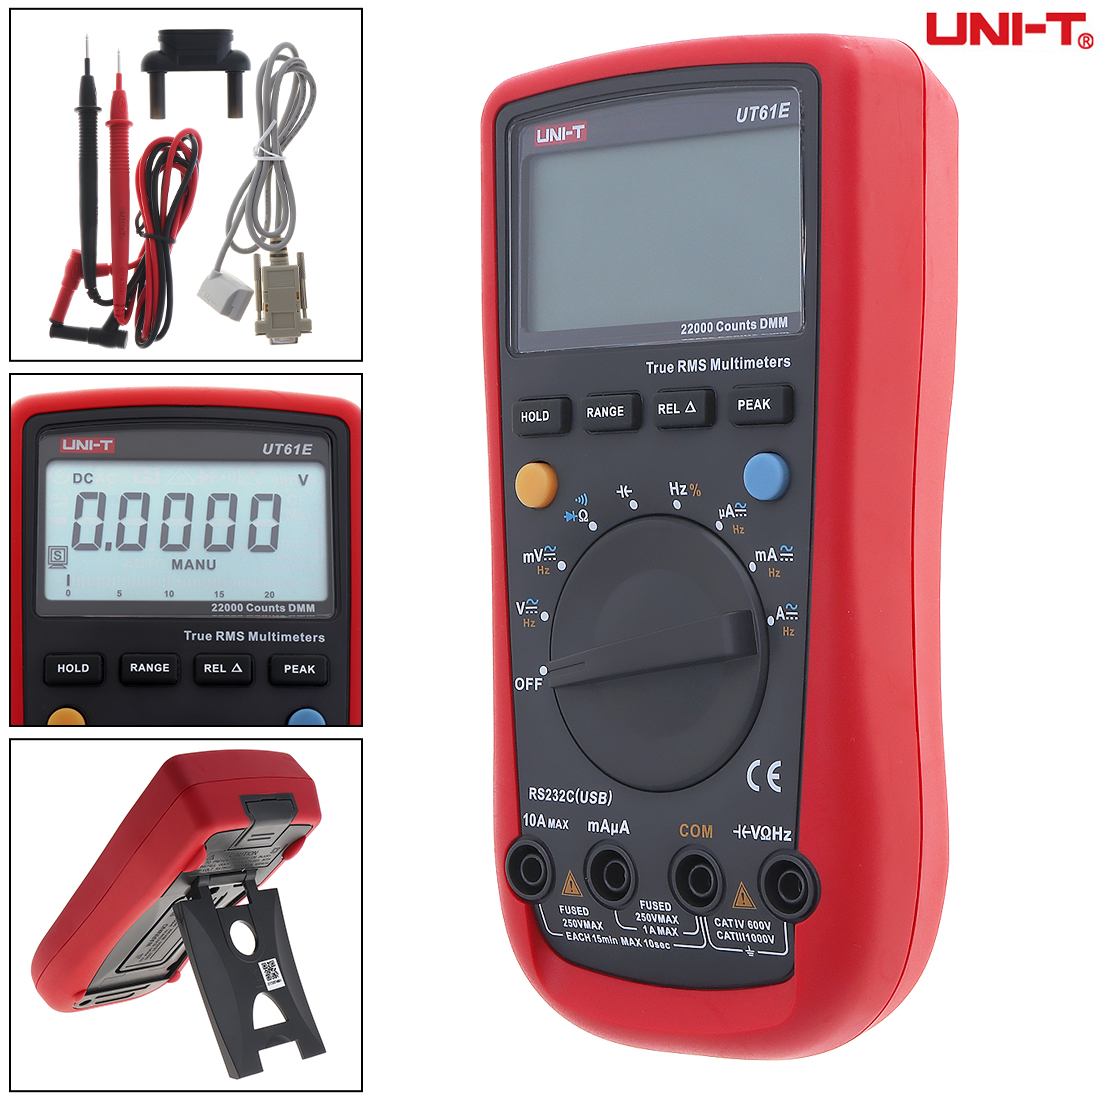 UT61E LCD Display 22000 Counts Handheld Digital Multimeter with Backlight and Adapter Socket Support Data Retention and Peak lcd digital compact pen type multimeter dmm lcd backlight display with english manual